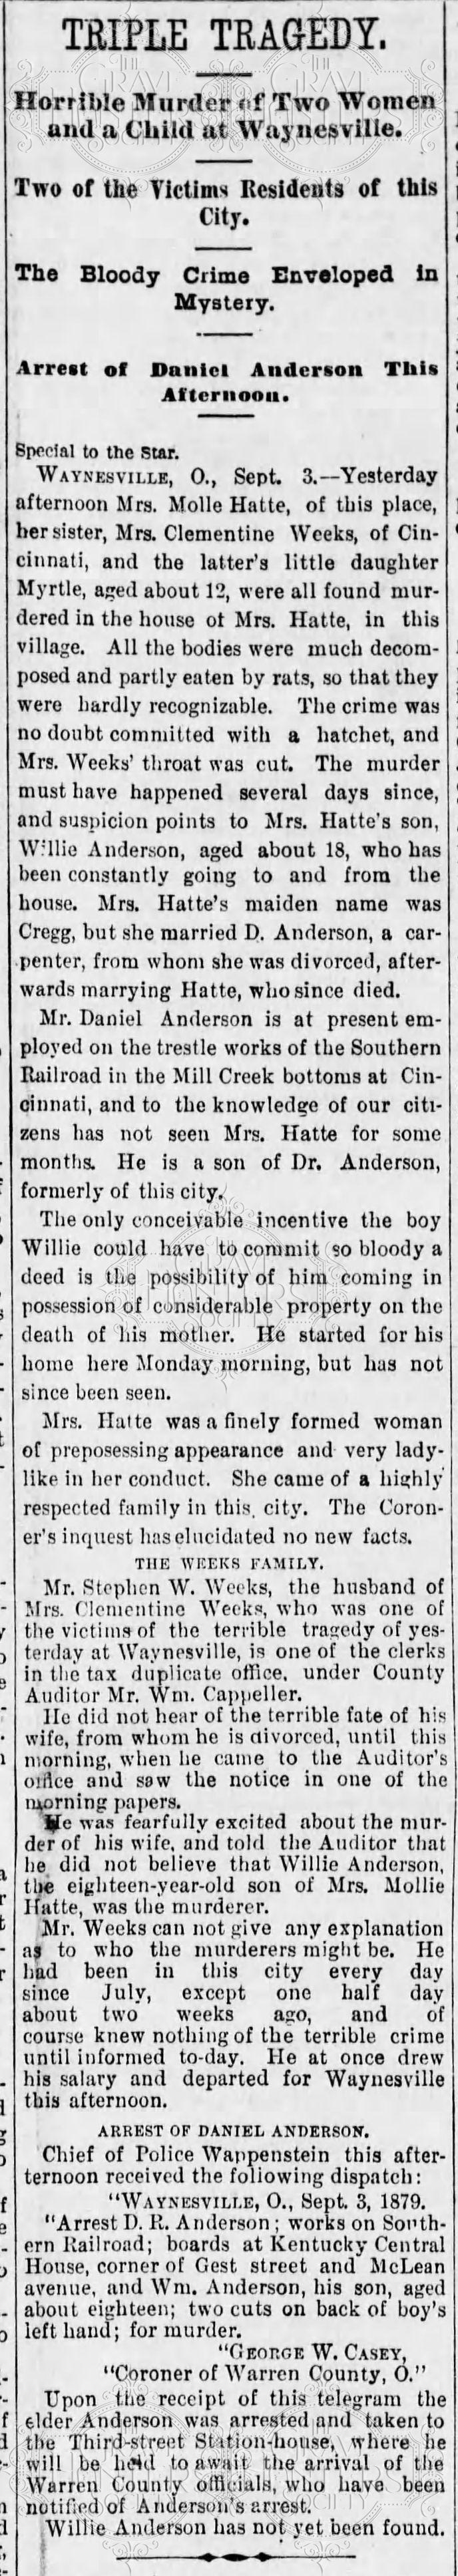 The Cincinnati Daily Star 09/03/1879